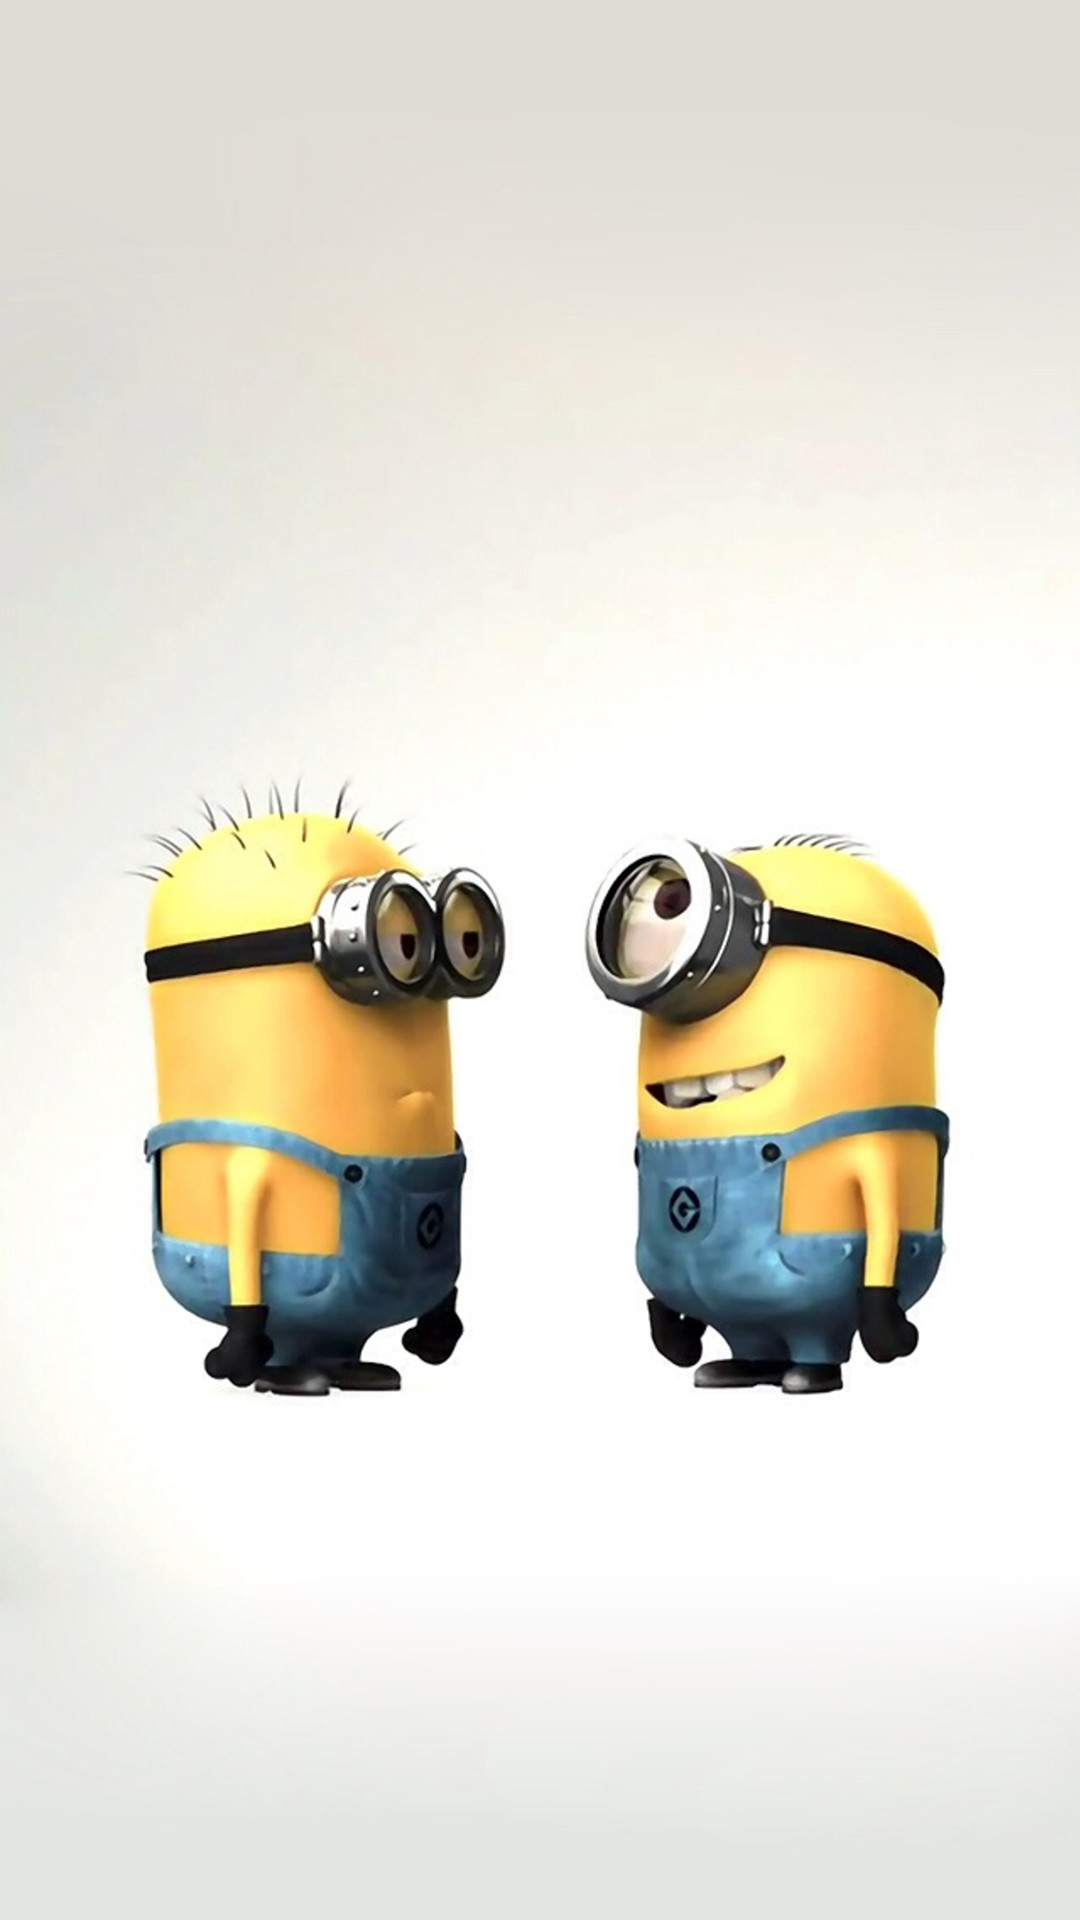 1080x1920 ... funny cute lovely minion couple iphone 8 wallpaper download; minion  iphone wallpaper hd wallpapersafari ...